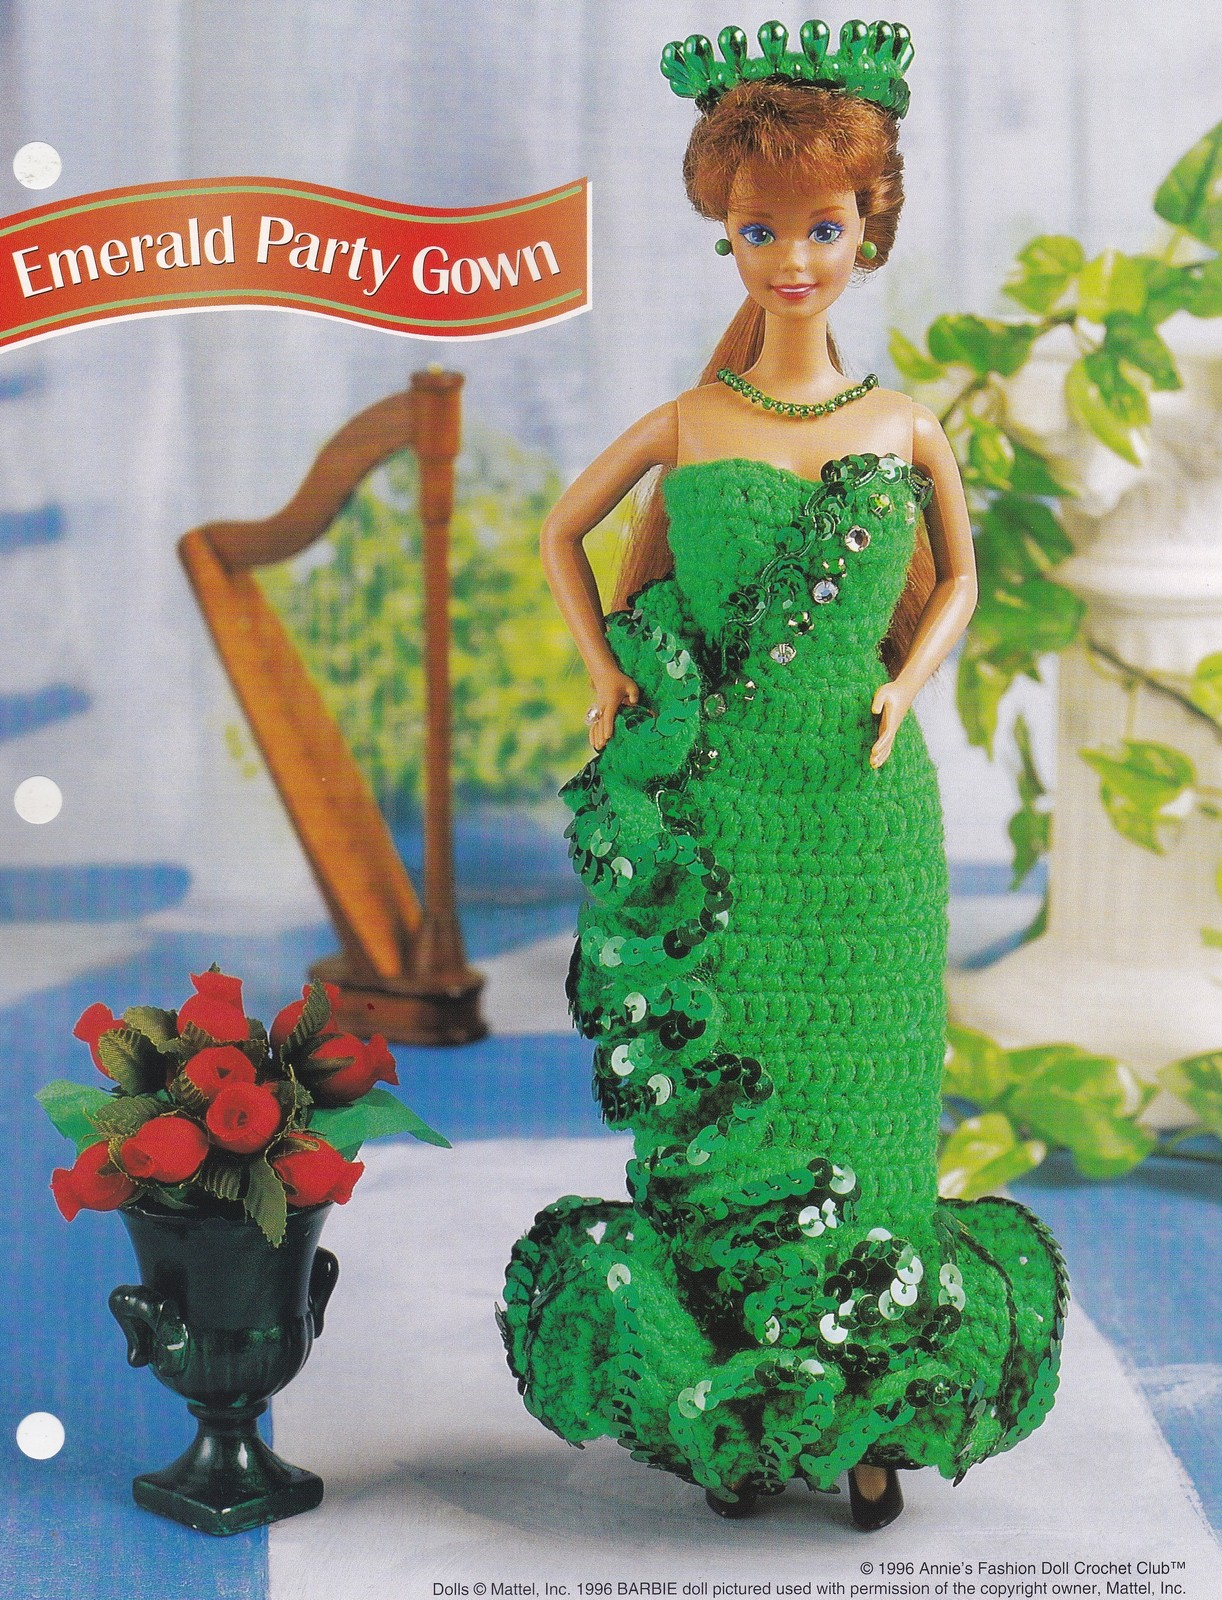 Emerald Party Gown, Annie's Attic Fashion Doll Crochet Pattern Club FCC13-04  - $1.95